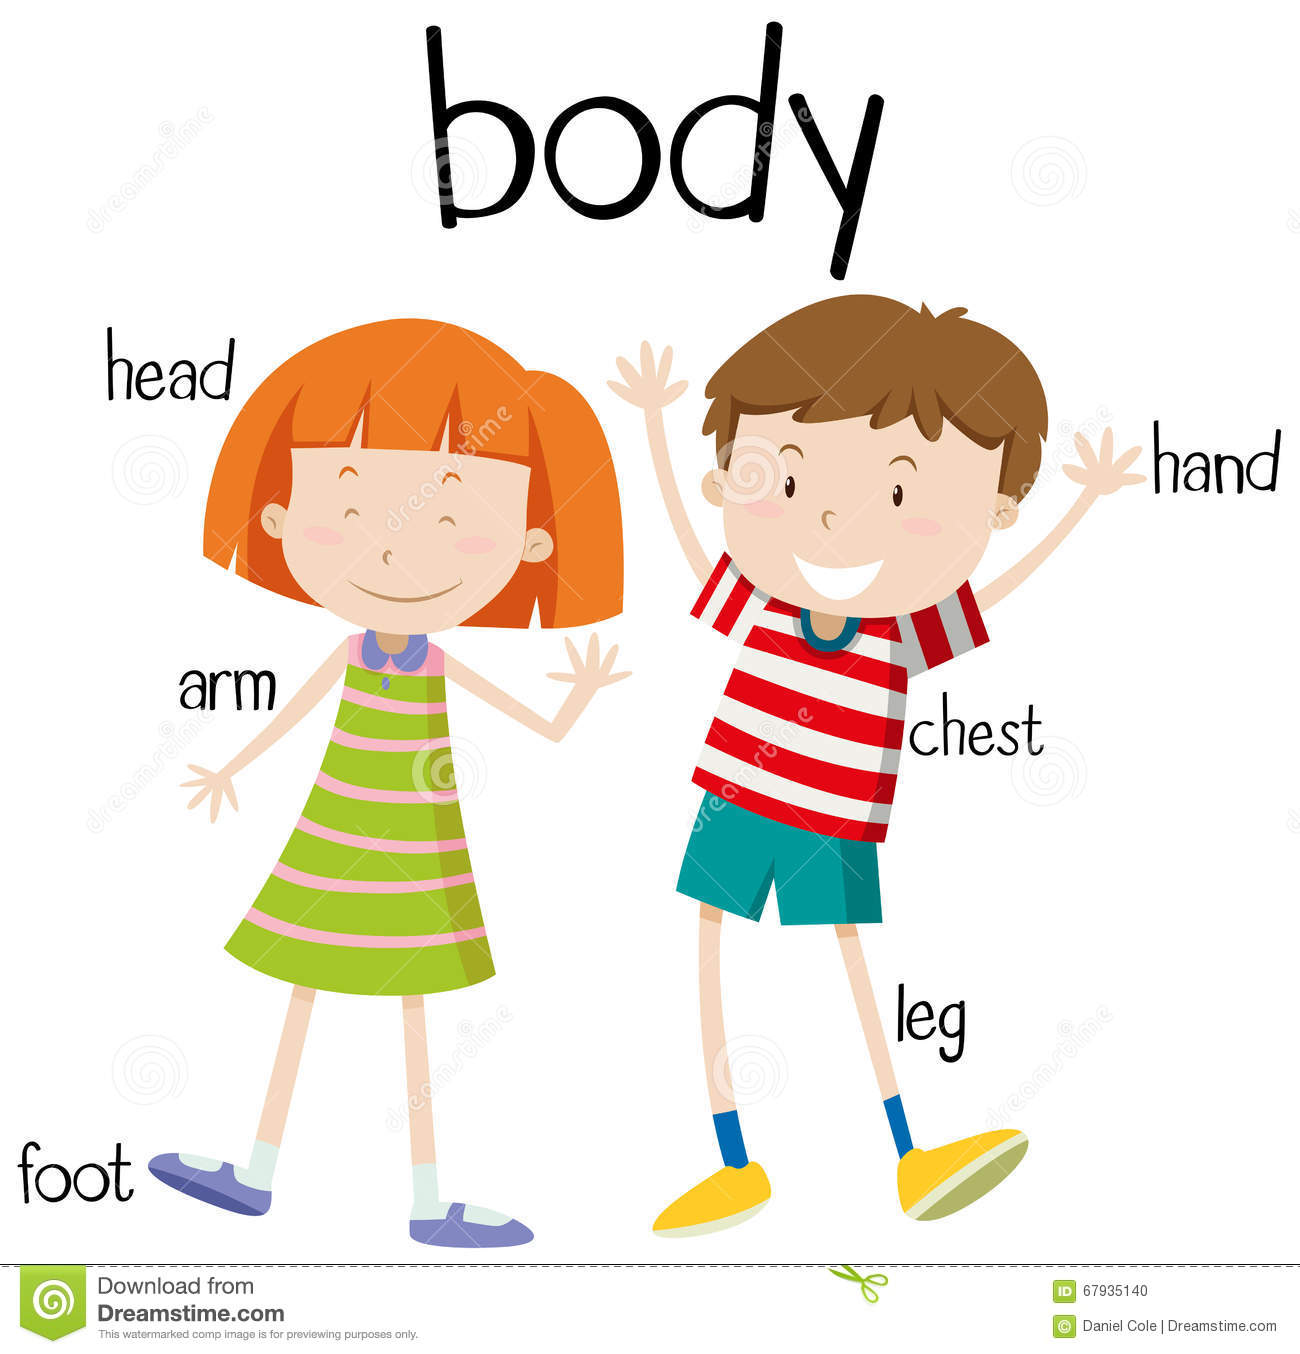 Parts of the body clipart png freeuse library Blank Body Clipart | Free download best Blank Body Clipart on ... png freeuse library